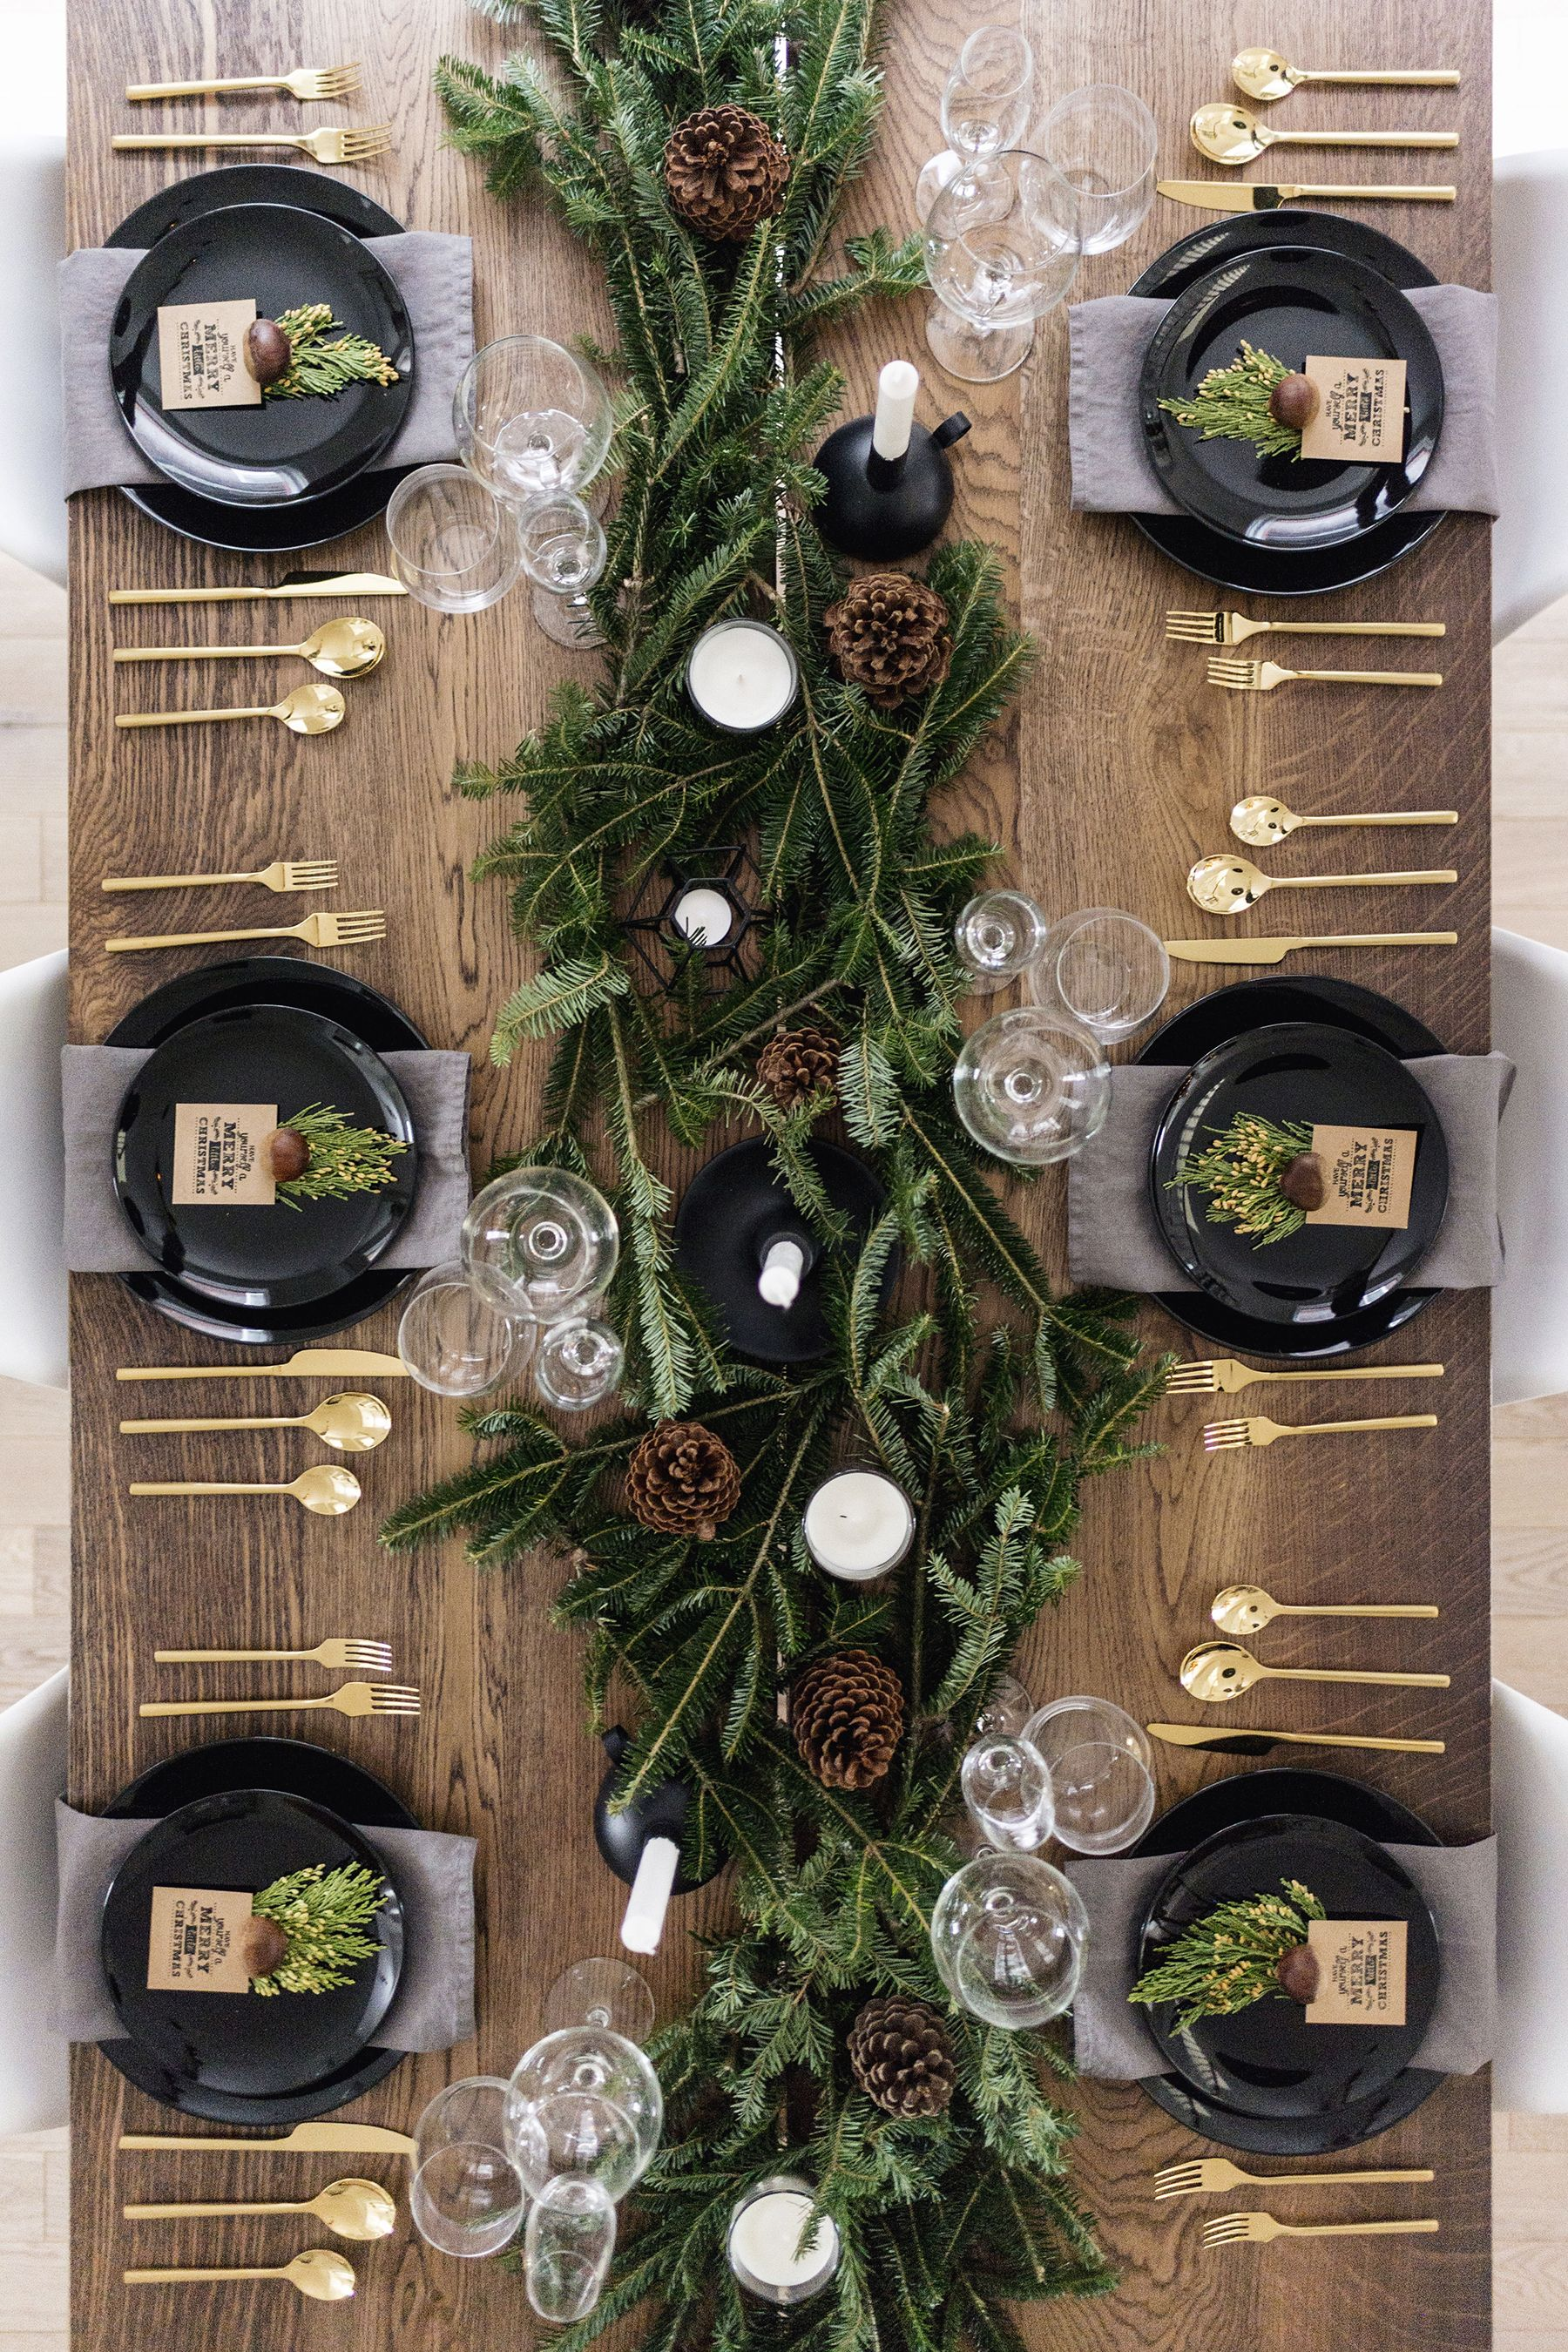 Modern Classy Christmas Tablescape Christmas Table Centerpieces Christmas Table Settings Christmas Tablescapes